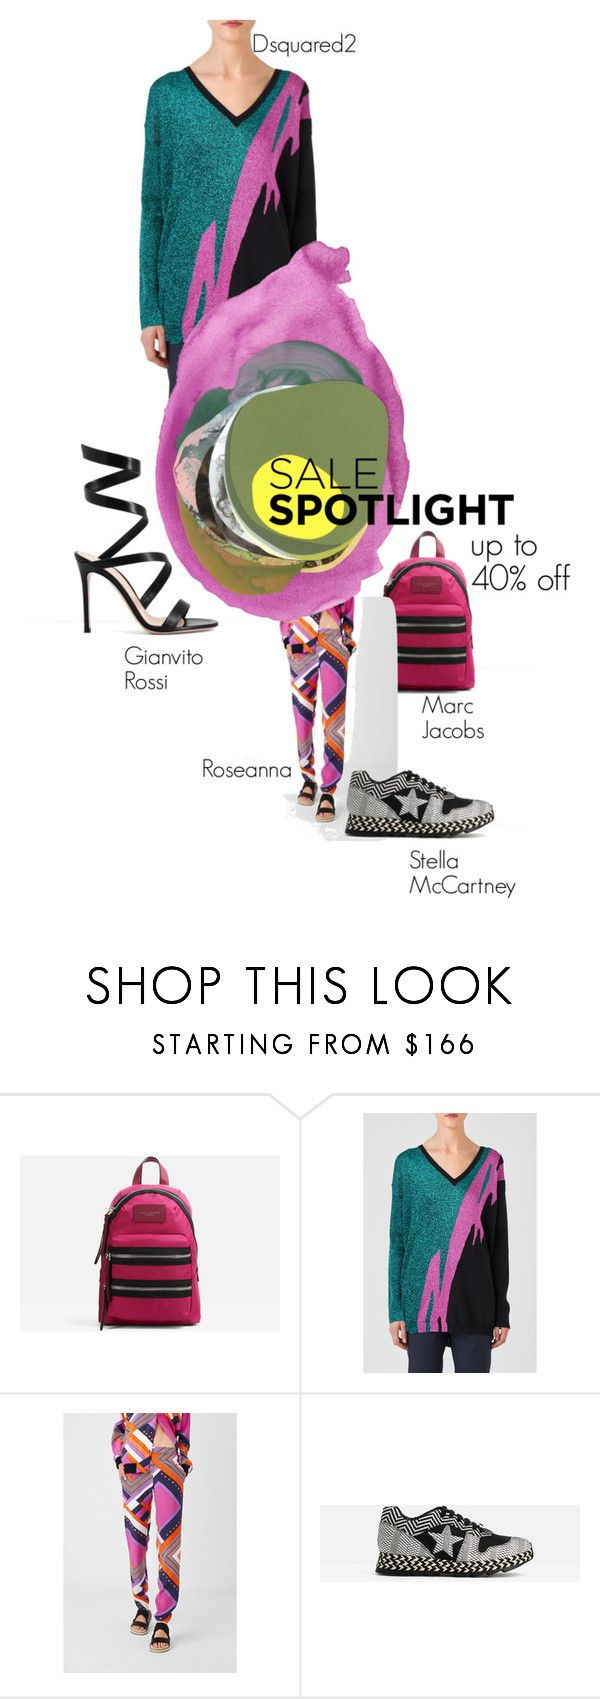 """Ekseptional SALE"" by ekseption ❤ liked on Polyvore featuring Marc Jacobs, Dsquared2, Roseanna, STELLA McCARTNEY, Gianvito Rossi, sale, sales and ekseption"